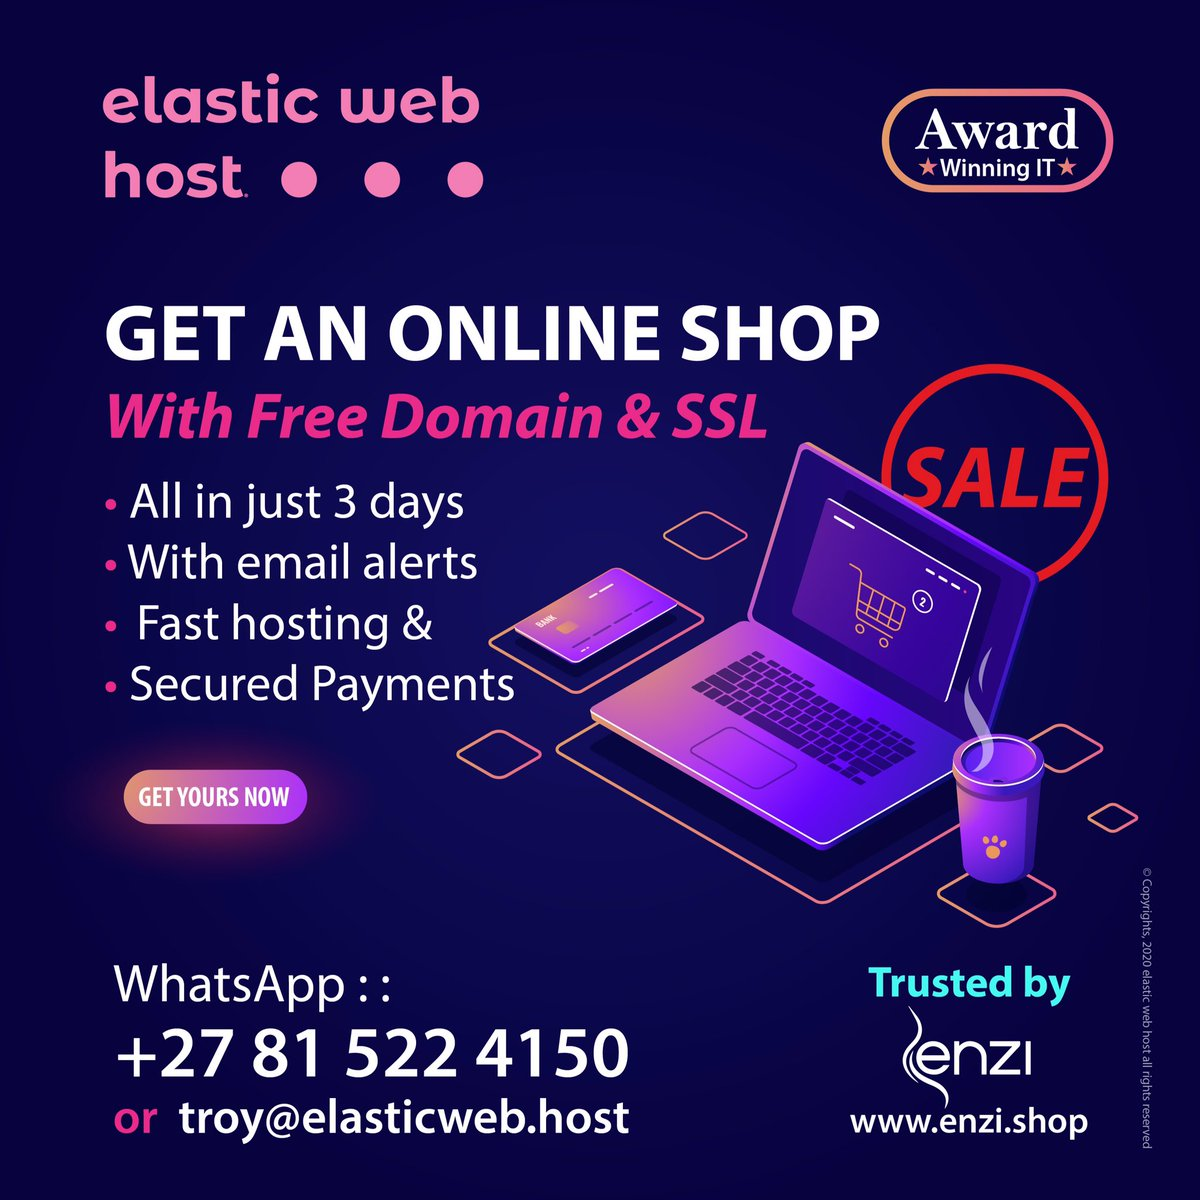 🌕Get an Online Shop for half the Price  ✳️ONLINE Shop with: ✅Free SSL ✅Free Domain ✅Unlimited Emails ✅ & Fast Hosting  ▶ Example:   ☎️Let's chat:  __ #DJSBU euphonic Themba #sundayvibes WhatsApp iphone #KonkheStoreGrandOpening